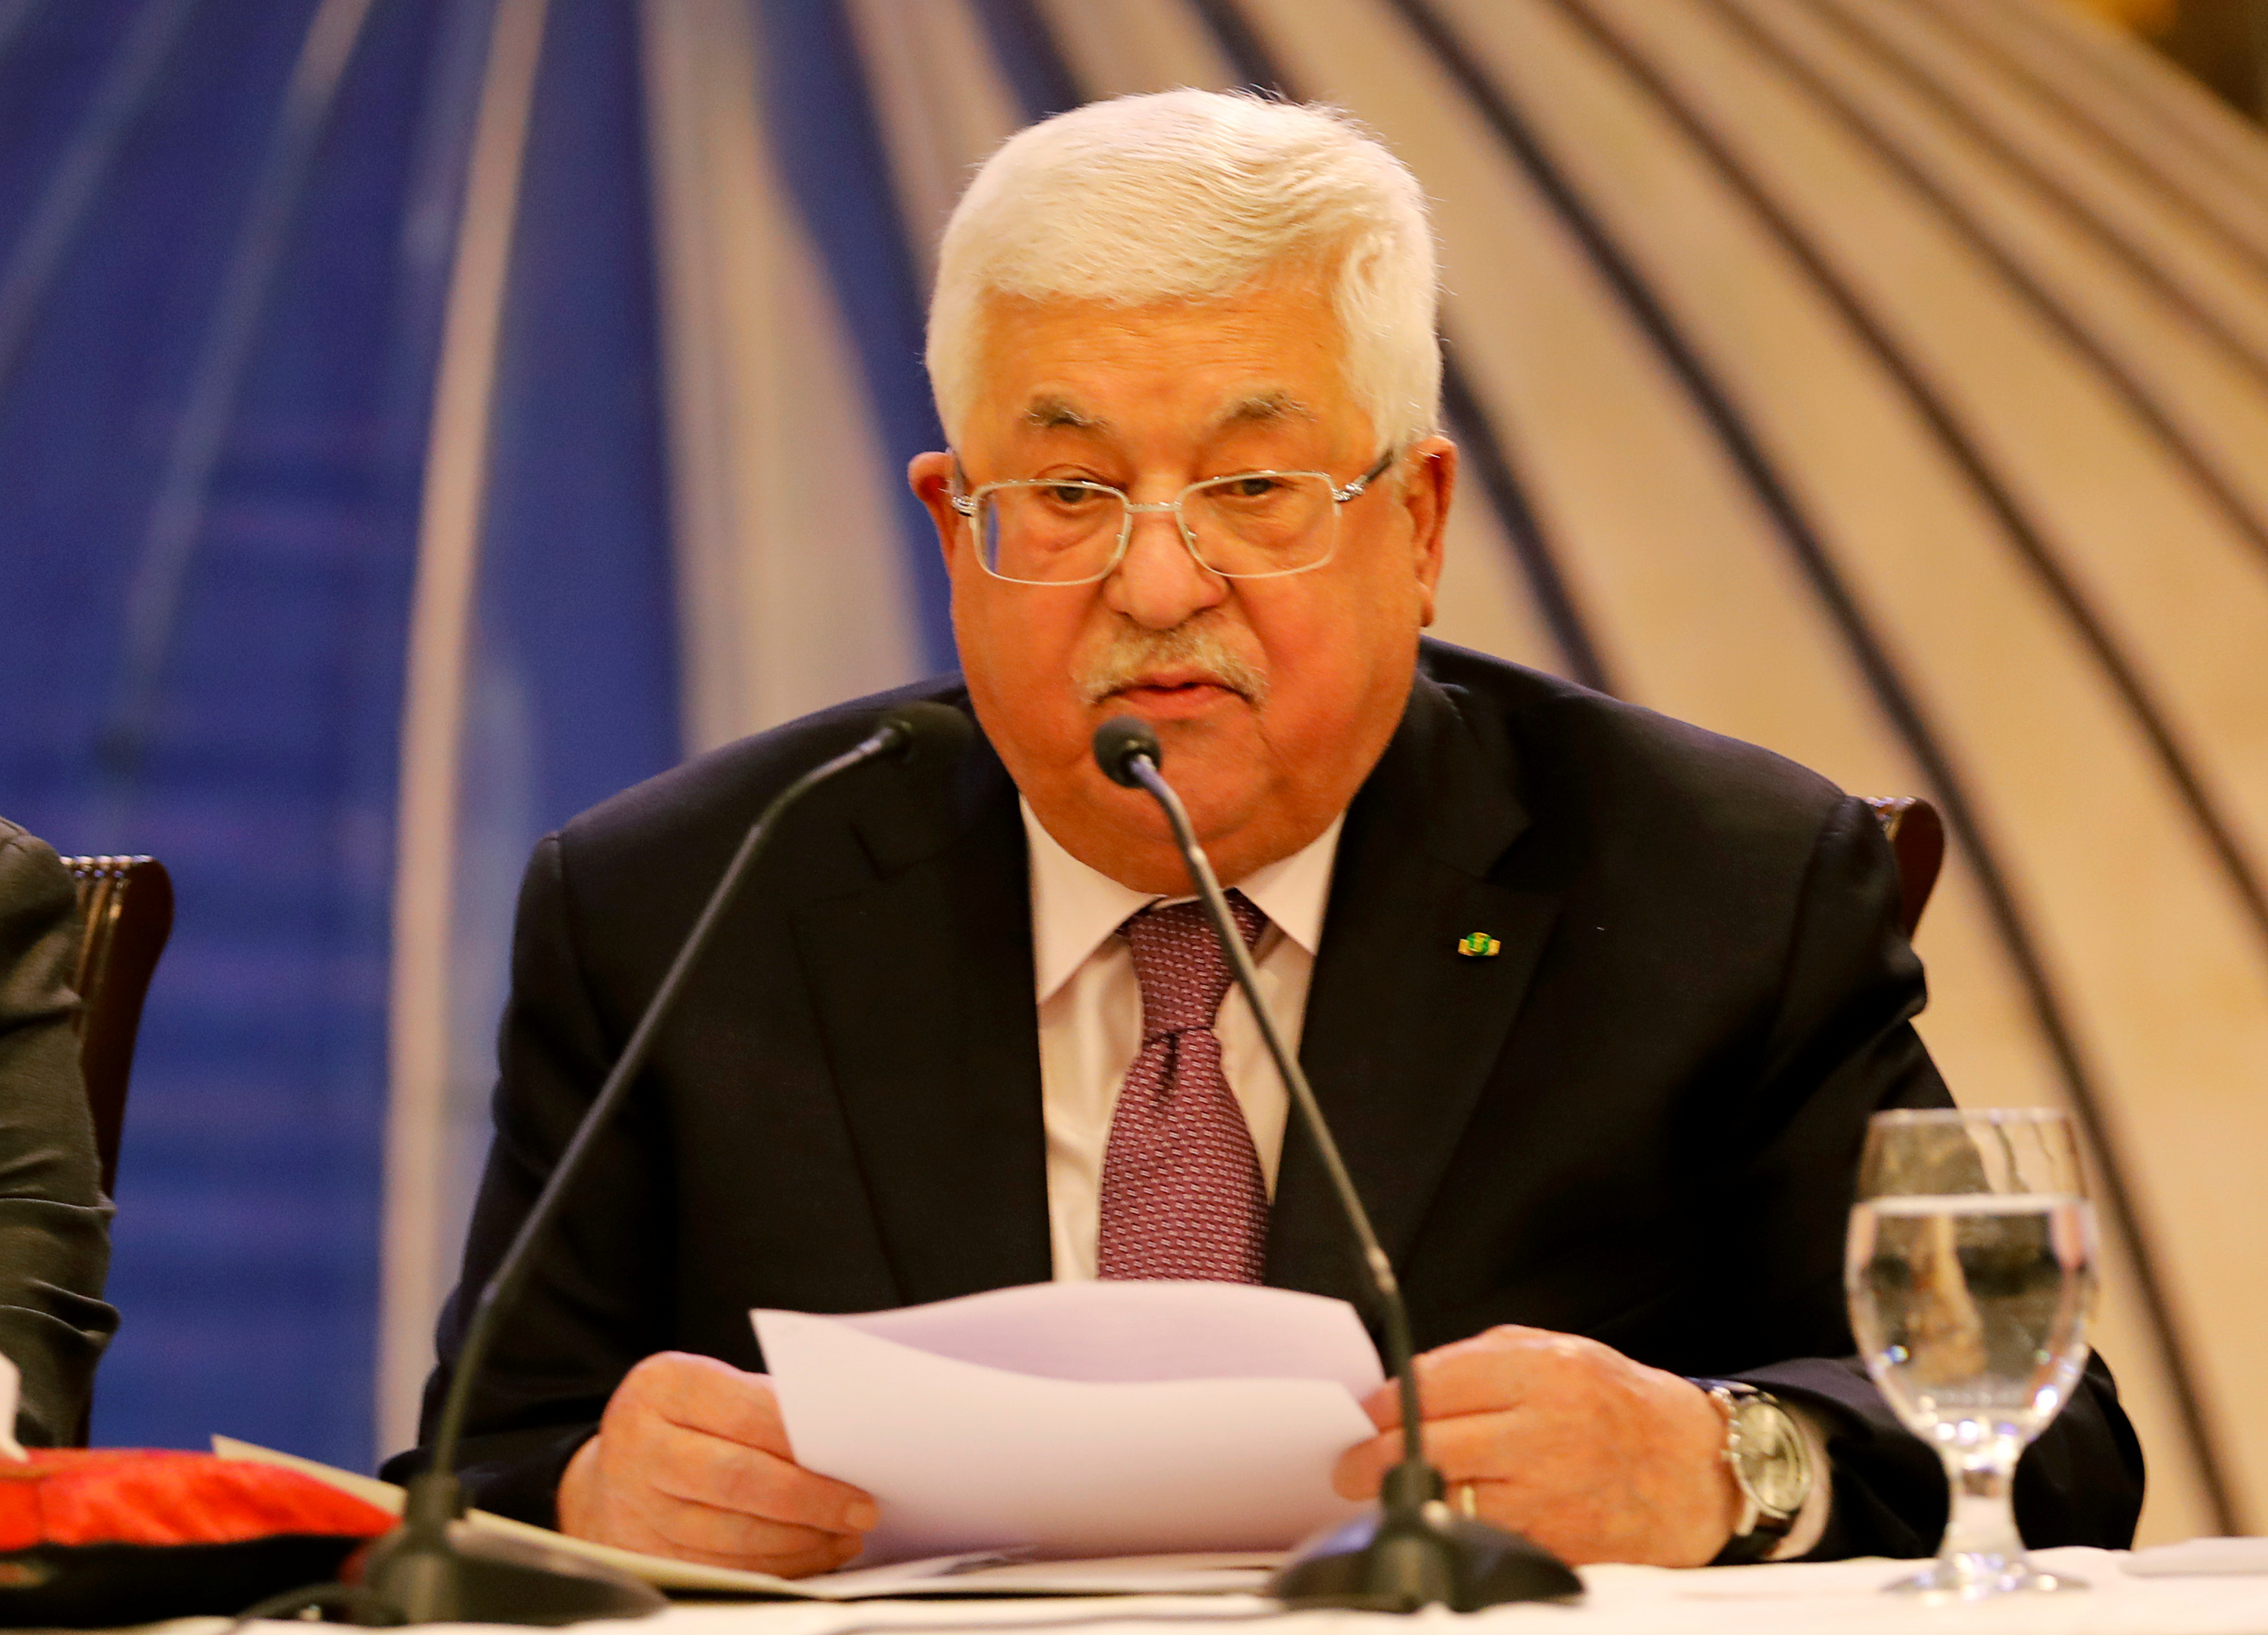 Palestinian President Mahmoud Abbas delivers a speech following President Donald Trump's announcement of a Middle East peace plan in Ramallah in the Israeli-occupied West Bank on January 28, 2020.  REUTERS / Raneen Sawafta